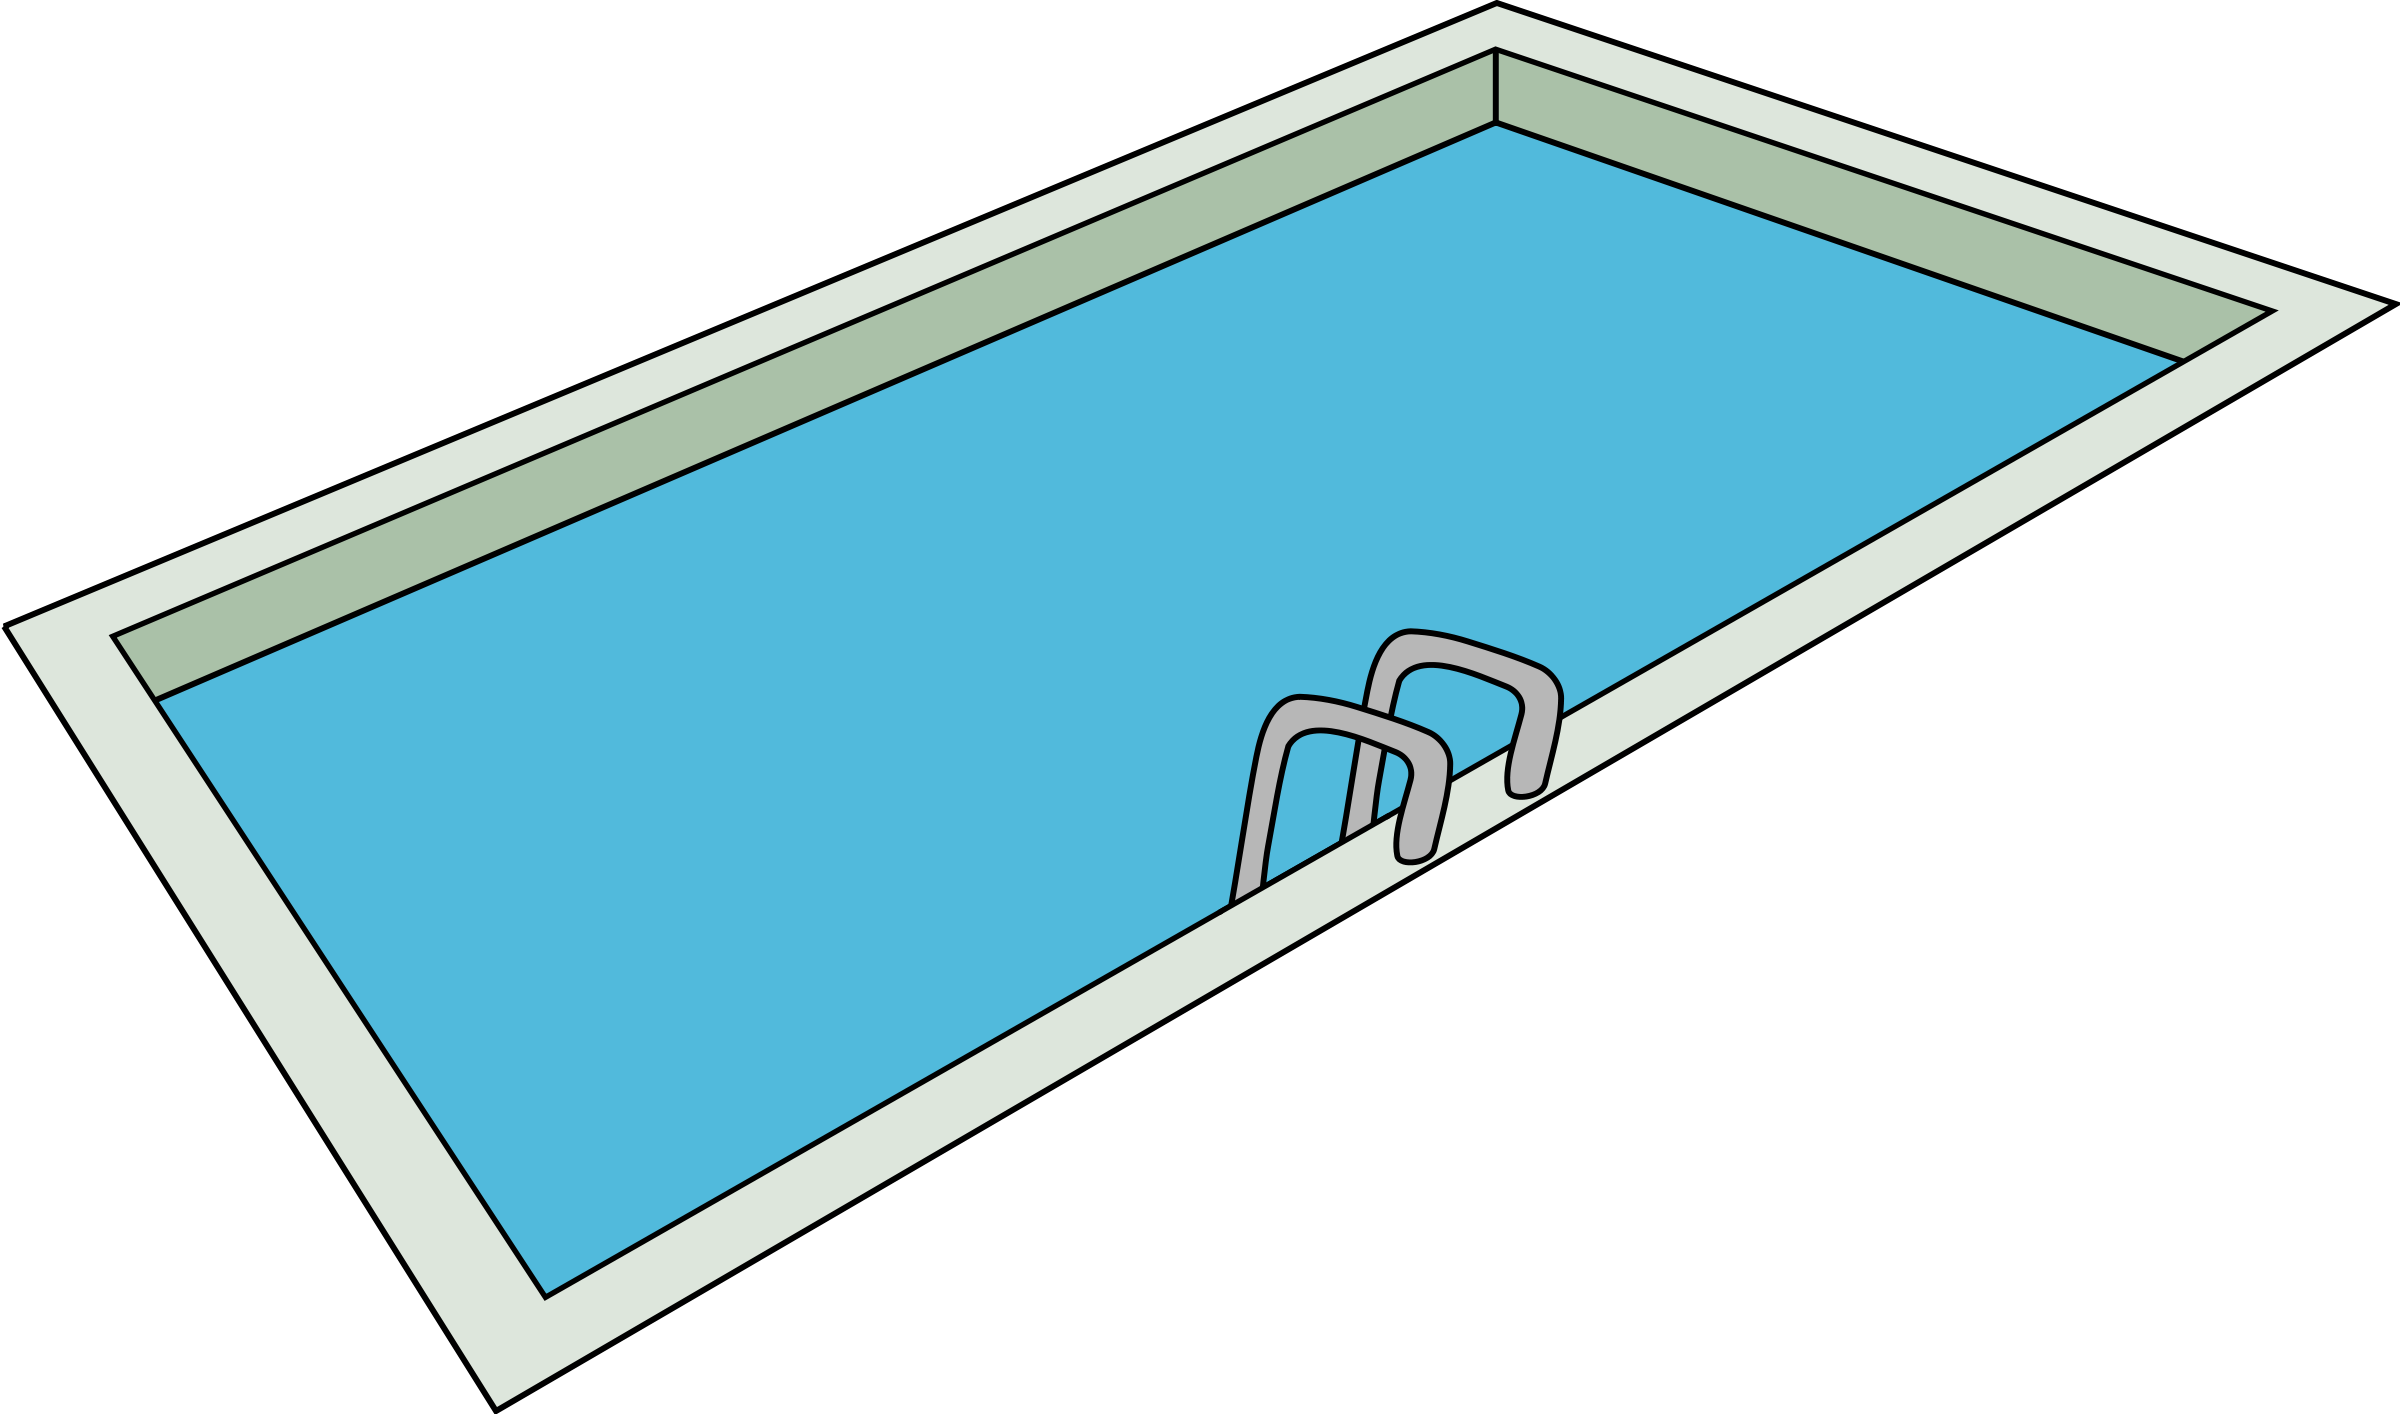 pool clipart-pool clipart-4